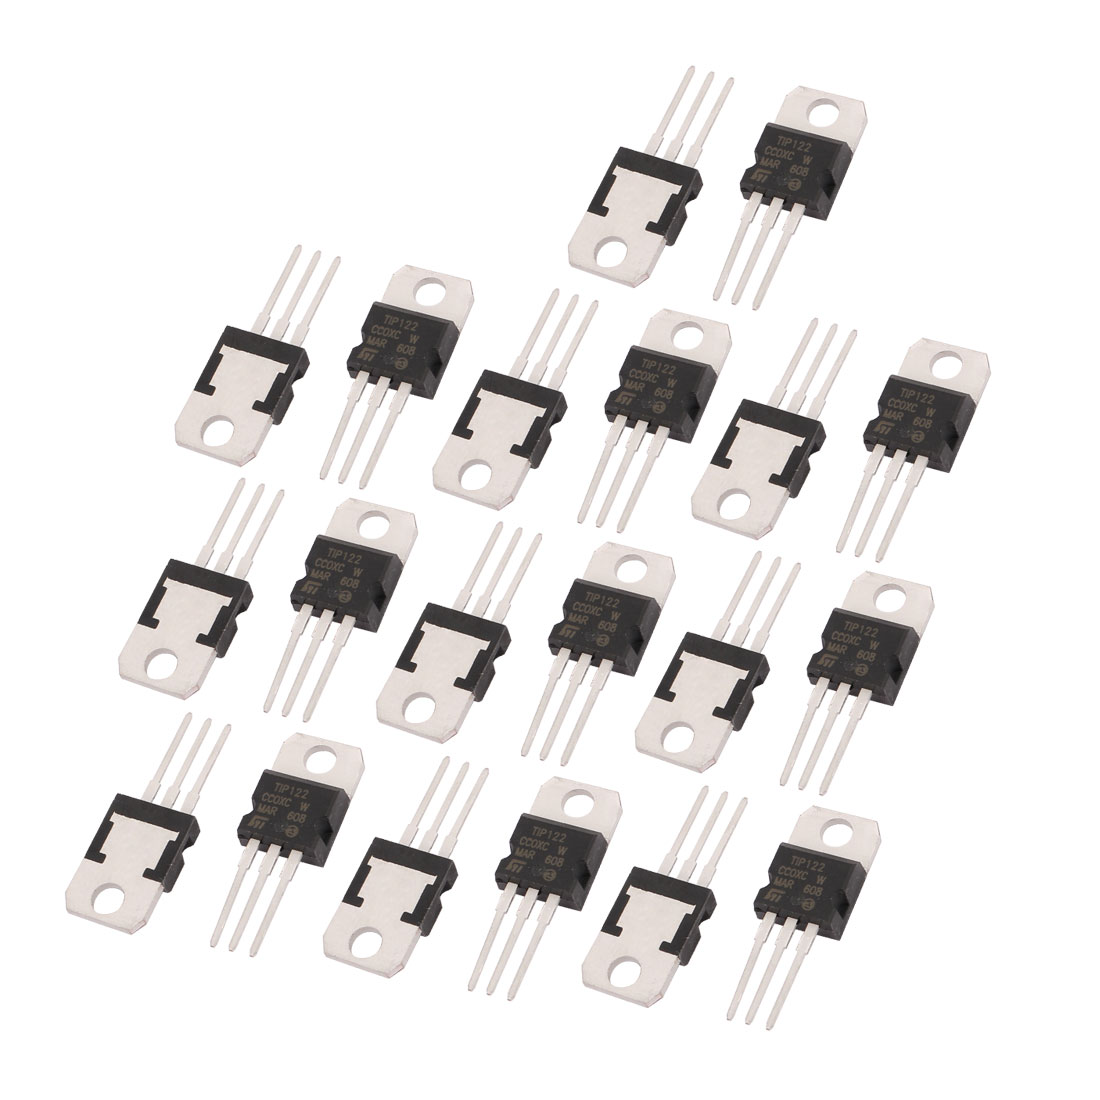 20 Pcs TIP122 Package TO-220 3 Terminals Power Transistor 100V 5A